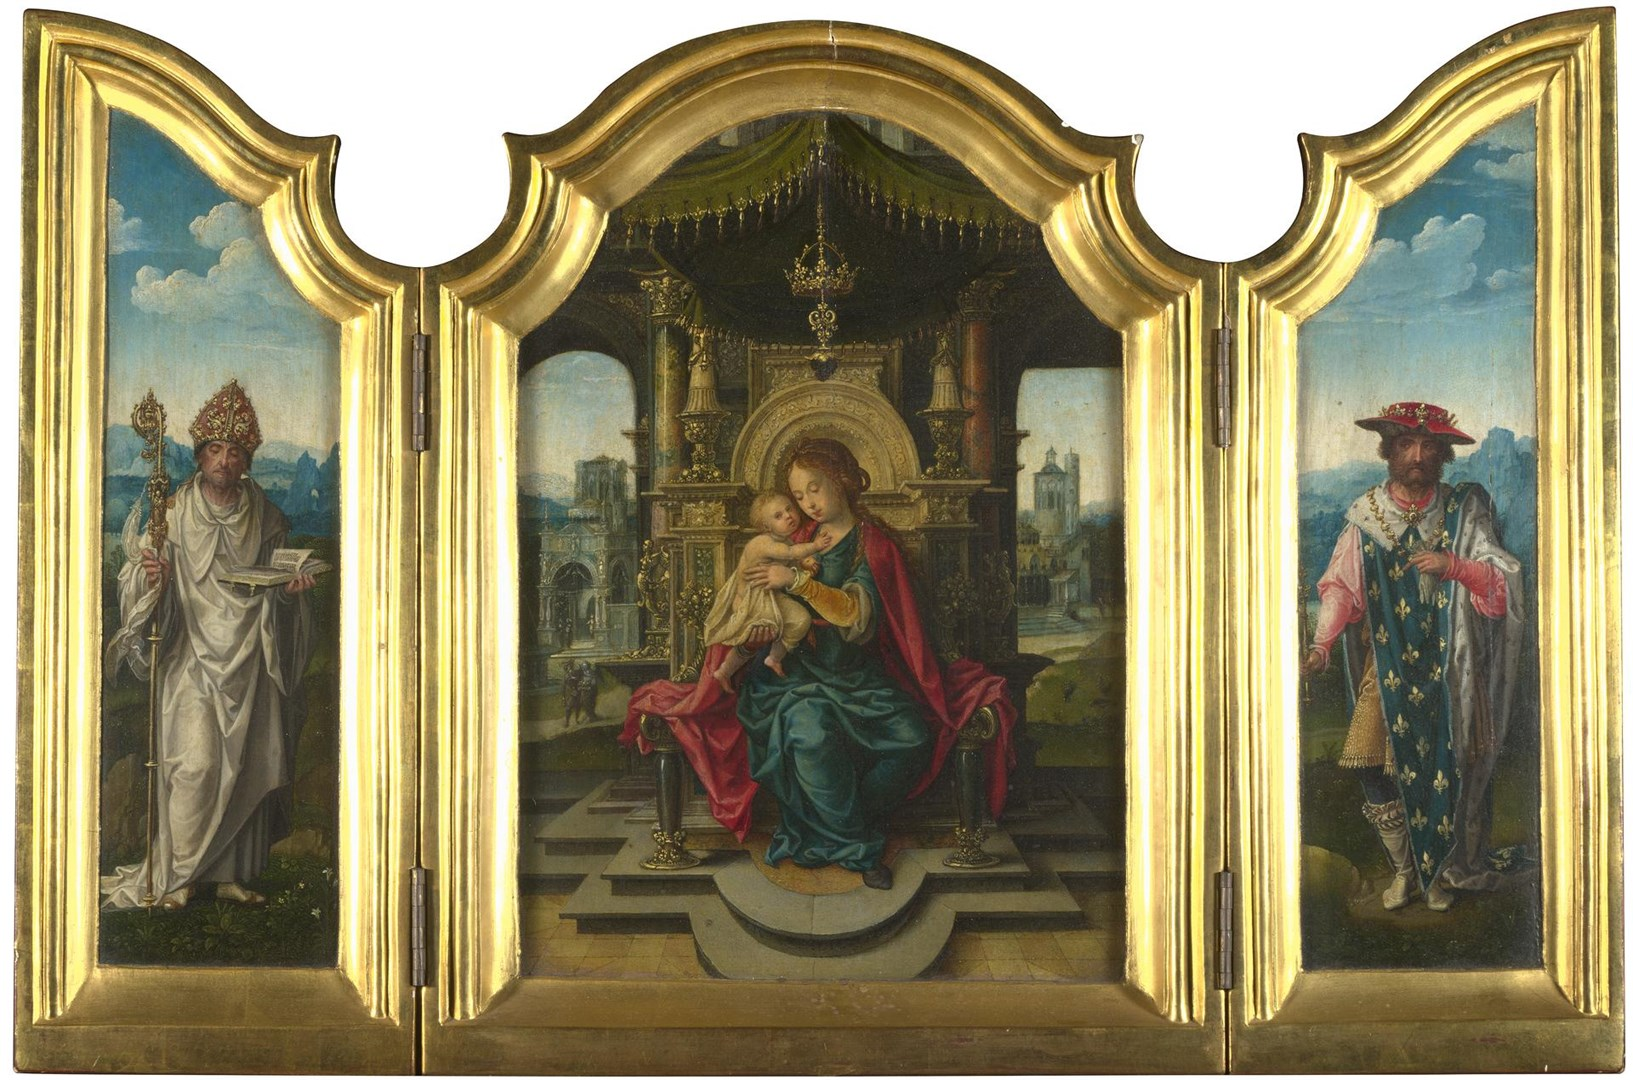 The Virgin and Child Enthroned by Workshop of Pieter Coecke van Aalst